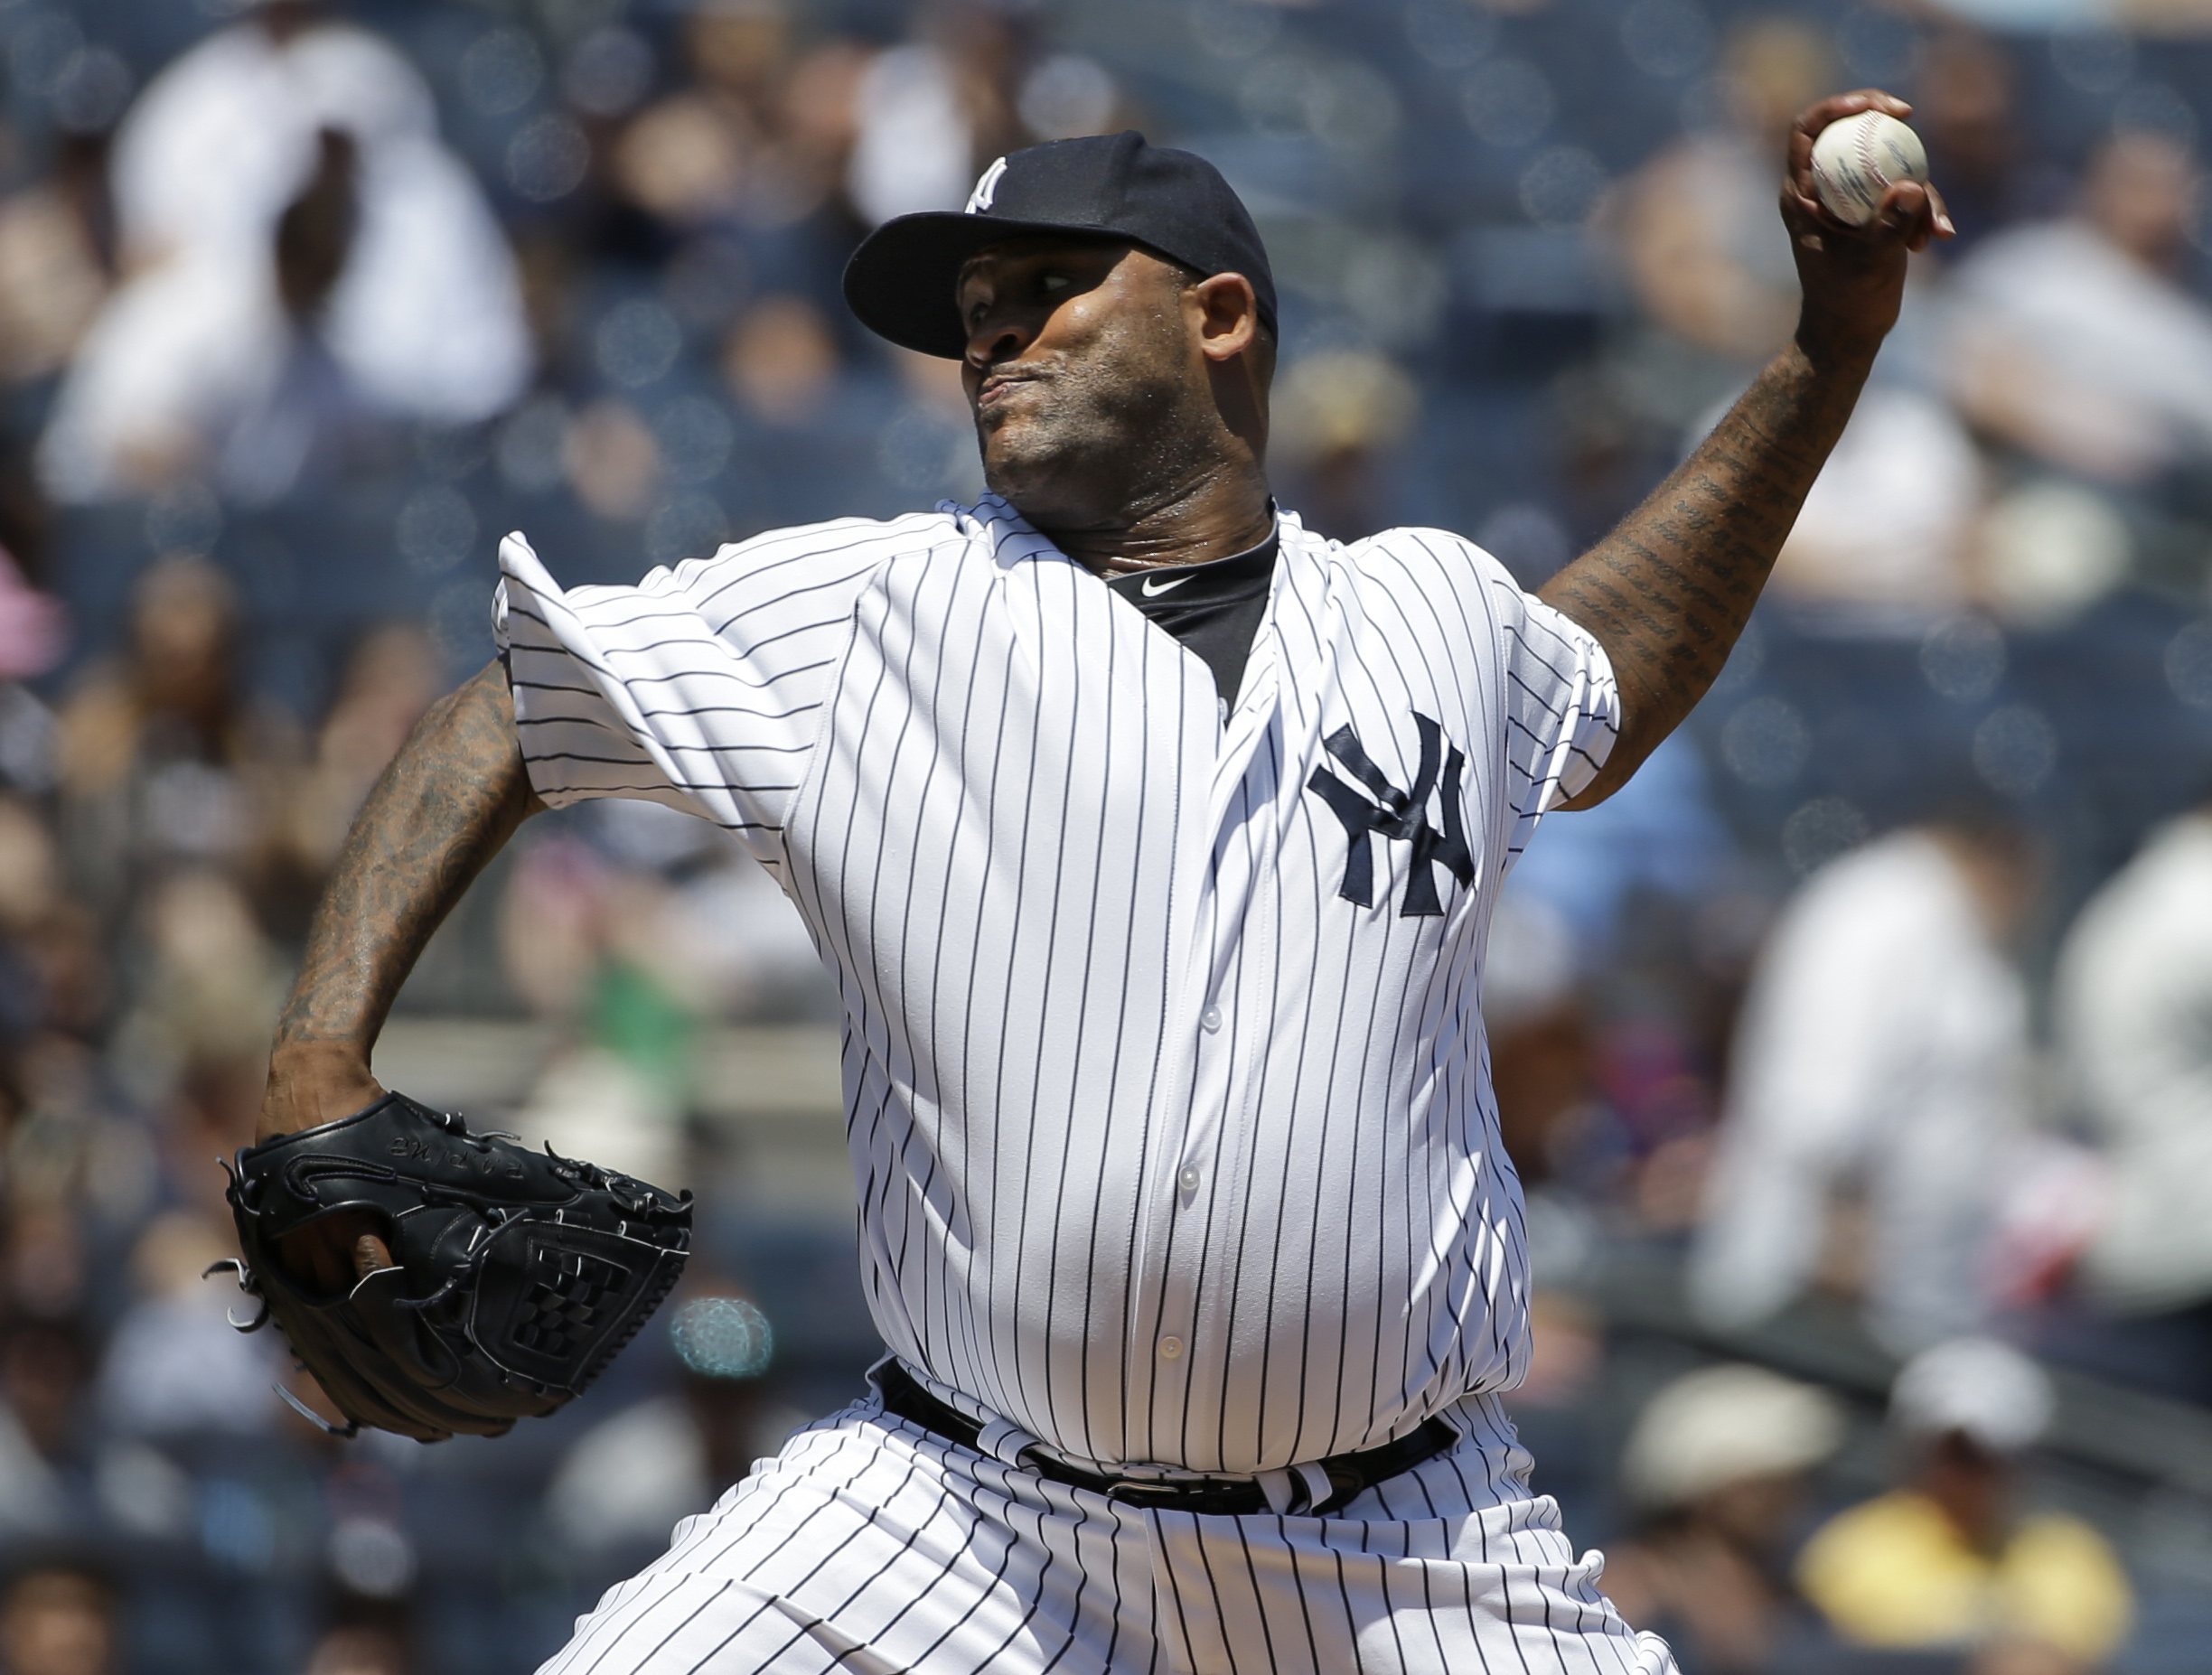 New York Yankees starting pitcher CC Sabathia throws during the first inning of a baseball game against the Los Angeles Angels, Sunday, June 7, 2015, in New York. (AP Photo/Seth Wenig)